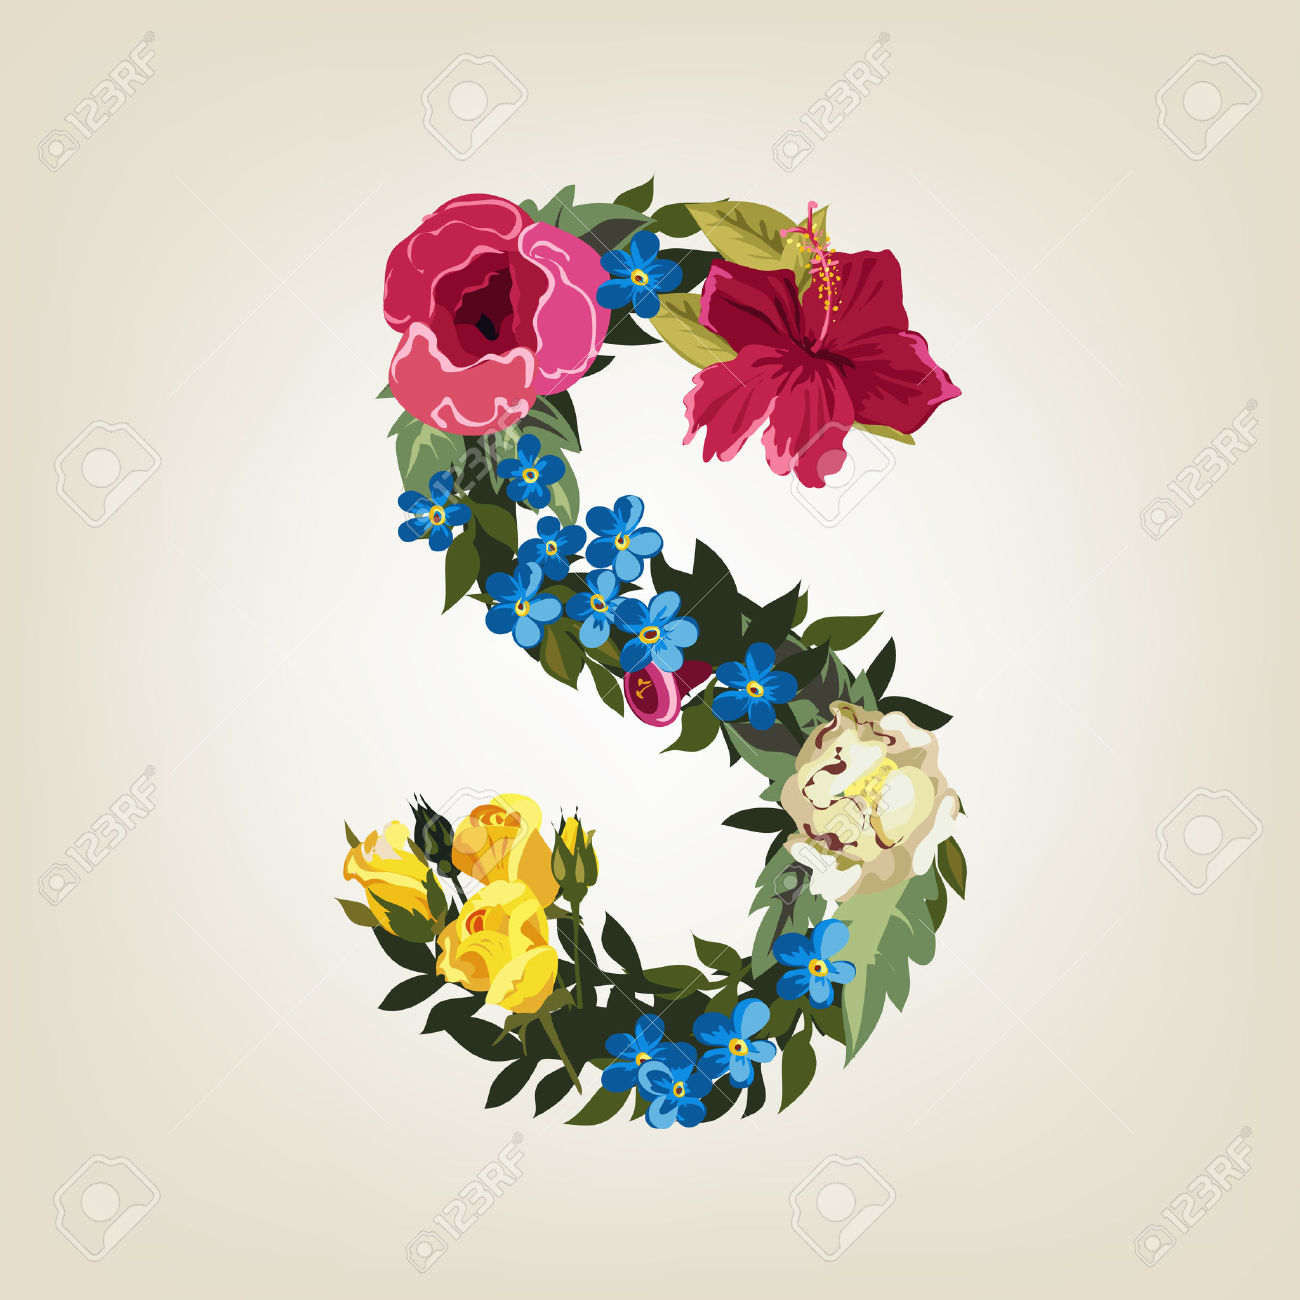 S Letter In Flower Capital Alphabet Royalty Free Cliparts, Vectors.